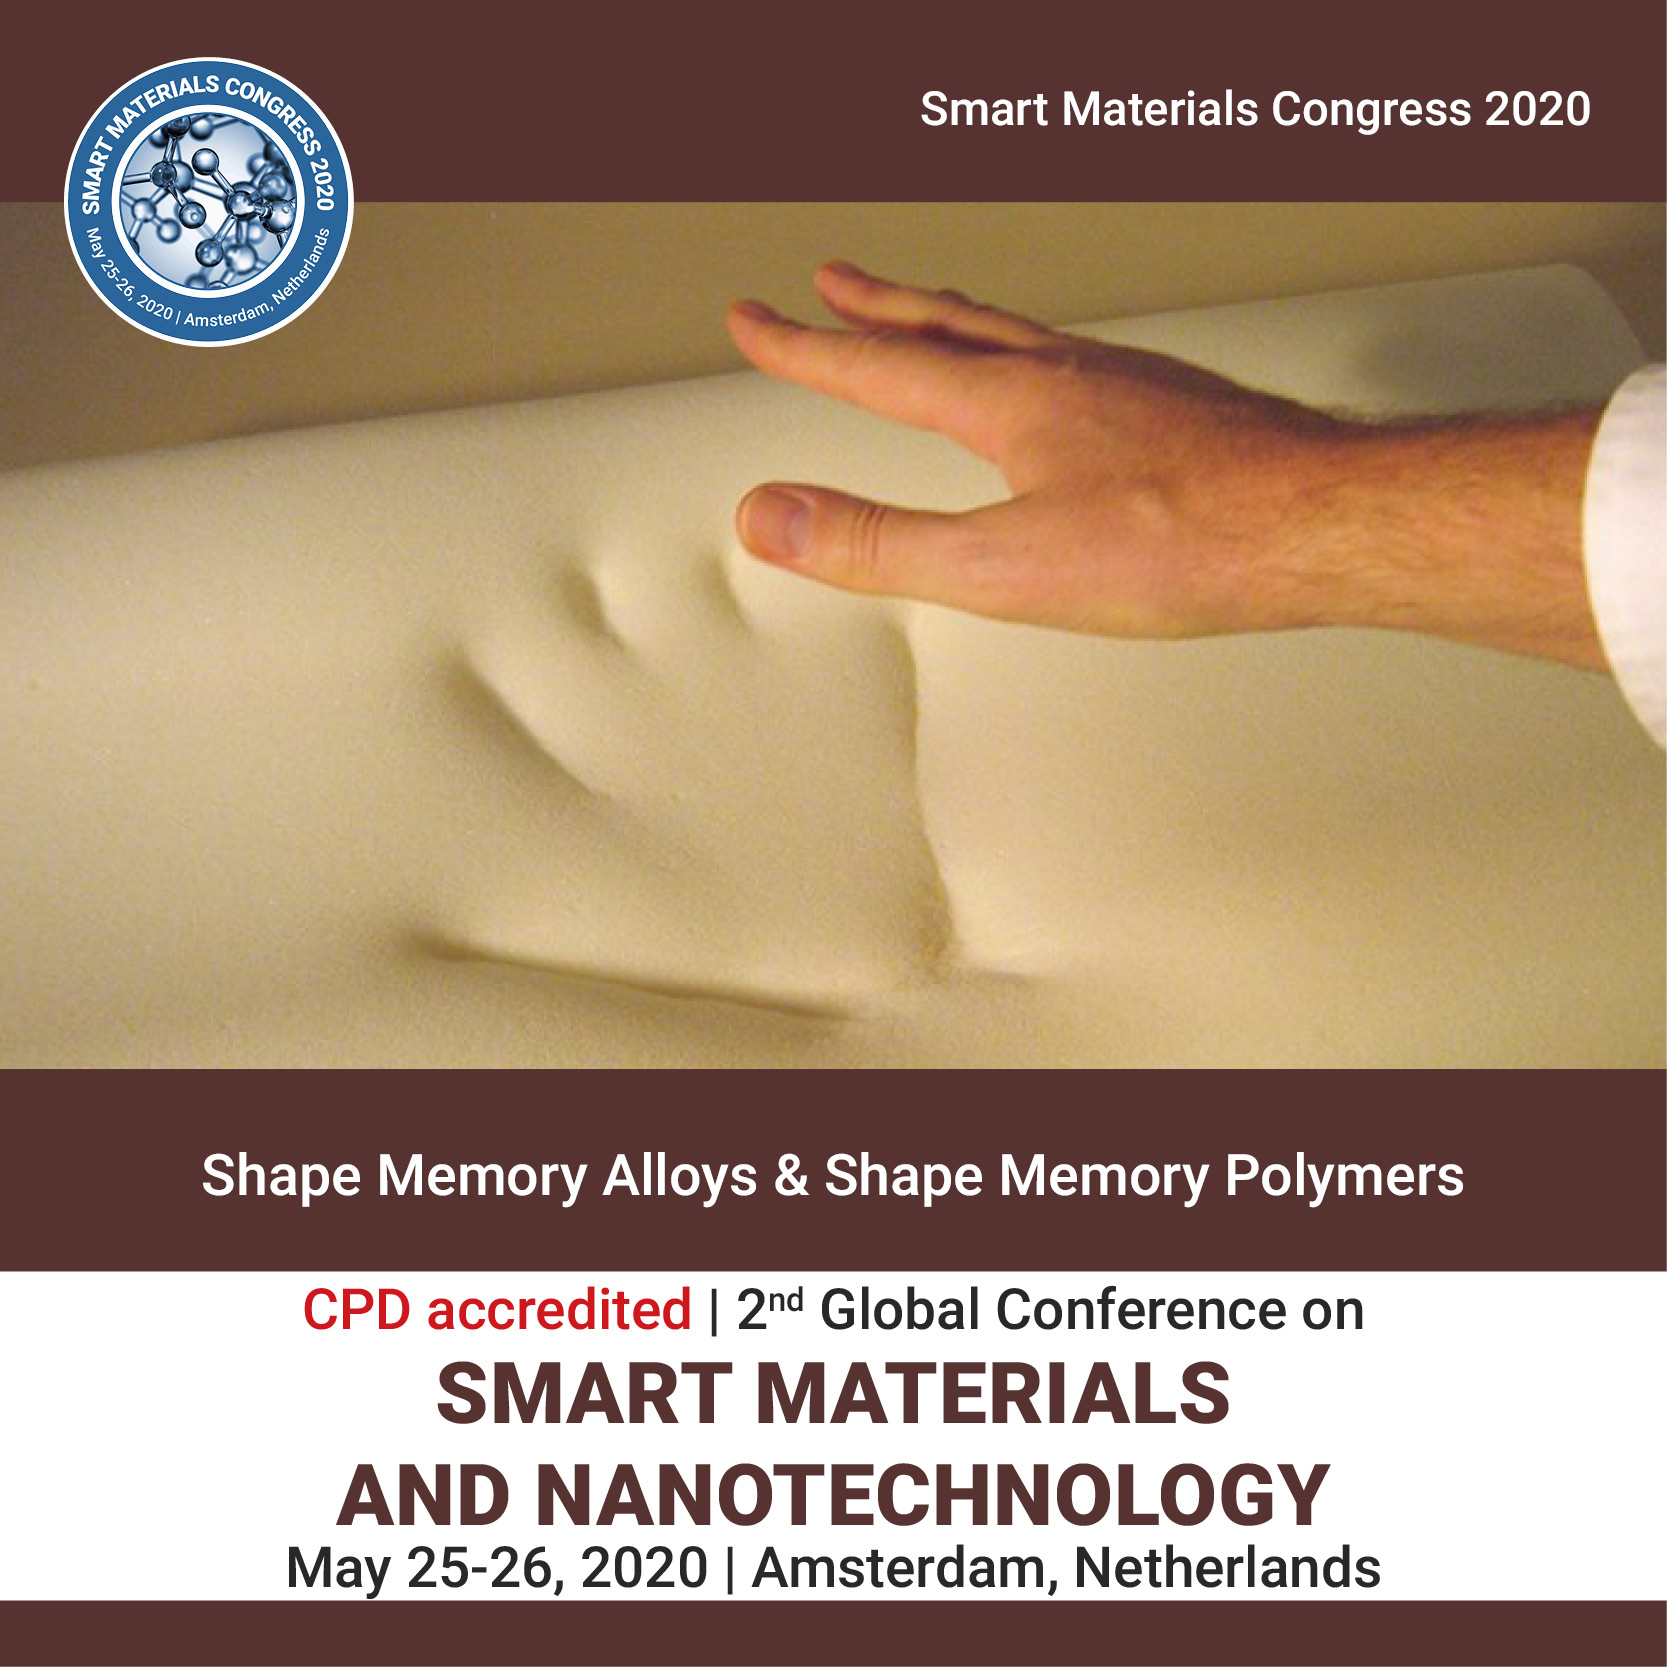 Shape Memory Alloys & Shape Memory Polymers Photo